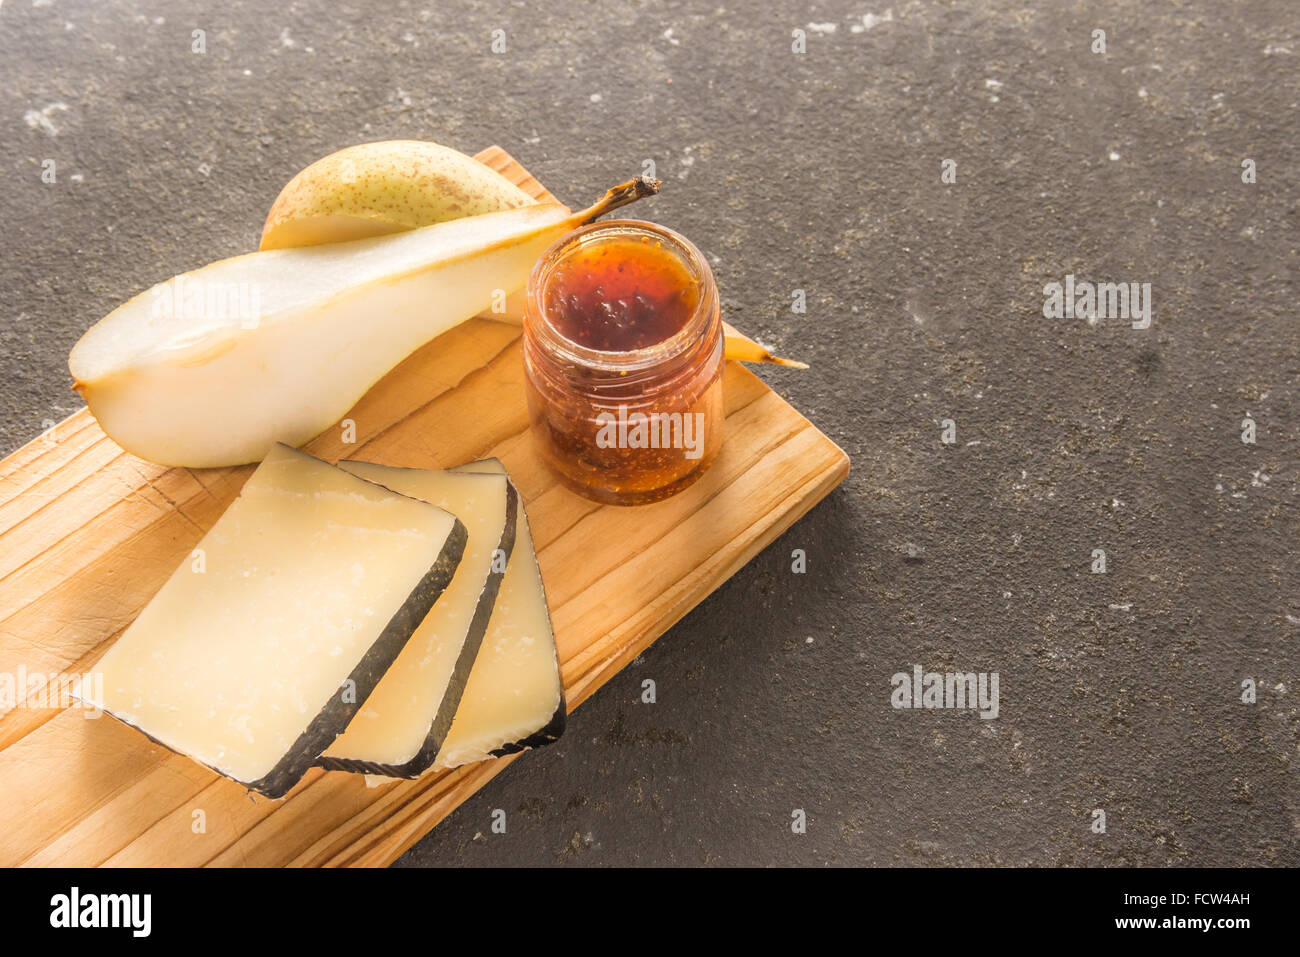 A composition of italian cheese pecorino slices with jam and pears on a wooden chopping board - Stock Image